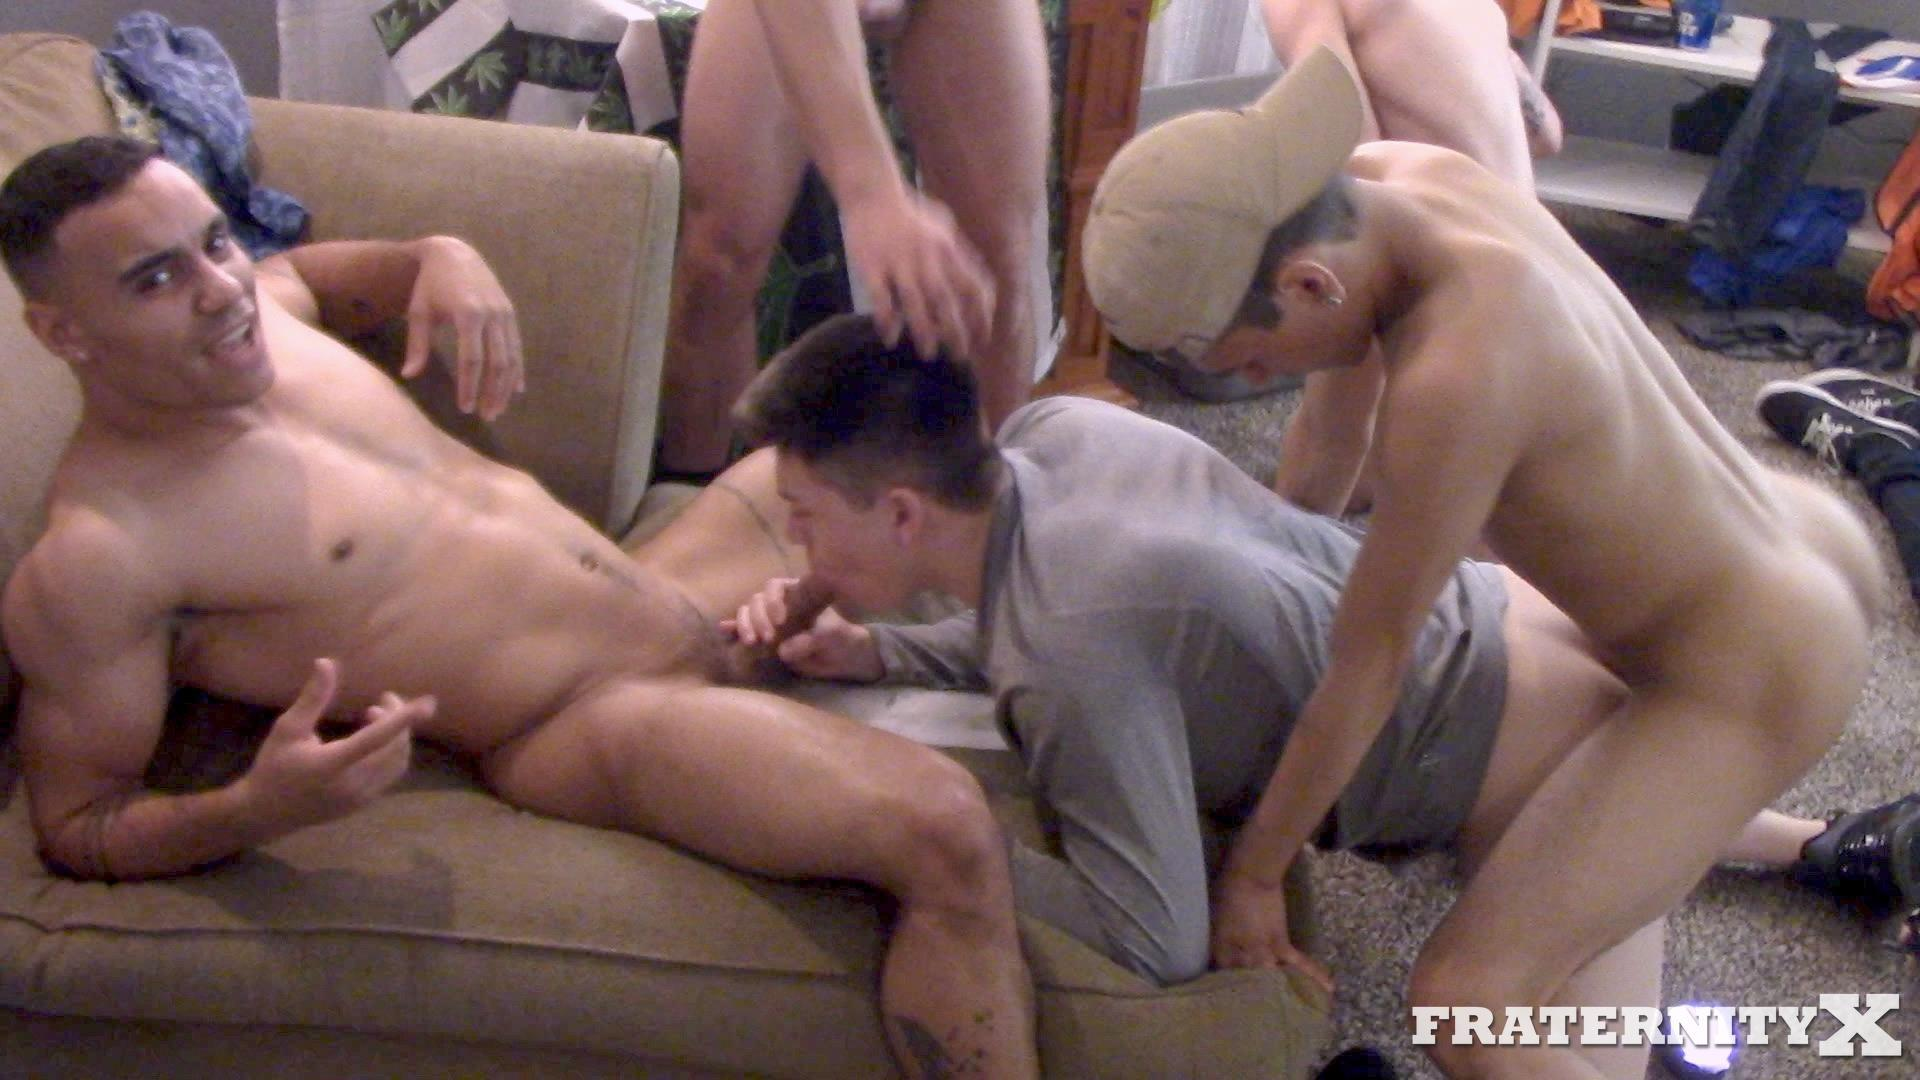 Fraternity-X-Naked-Frat-Guys-Fucking-Bareback-01 Drunk and High Frat Boys Gang Bang Two Of Their Frat Brothers